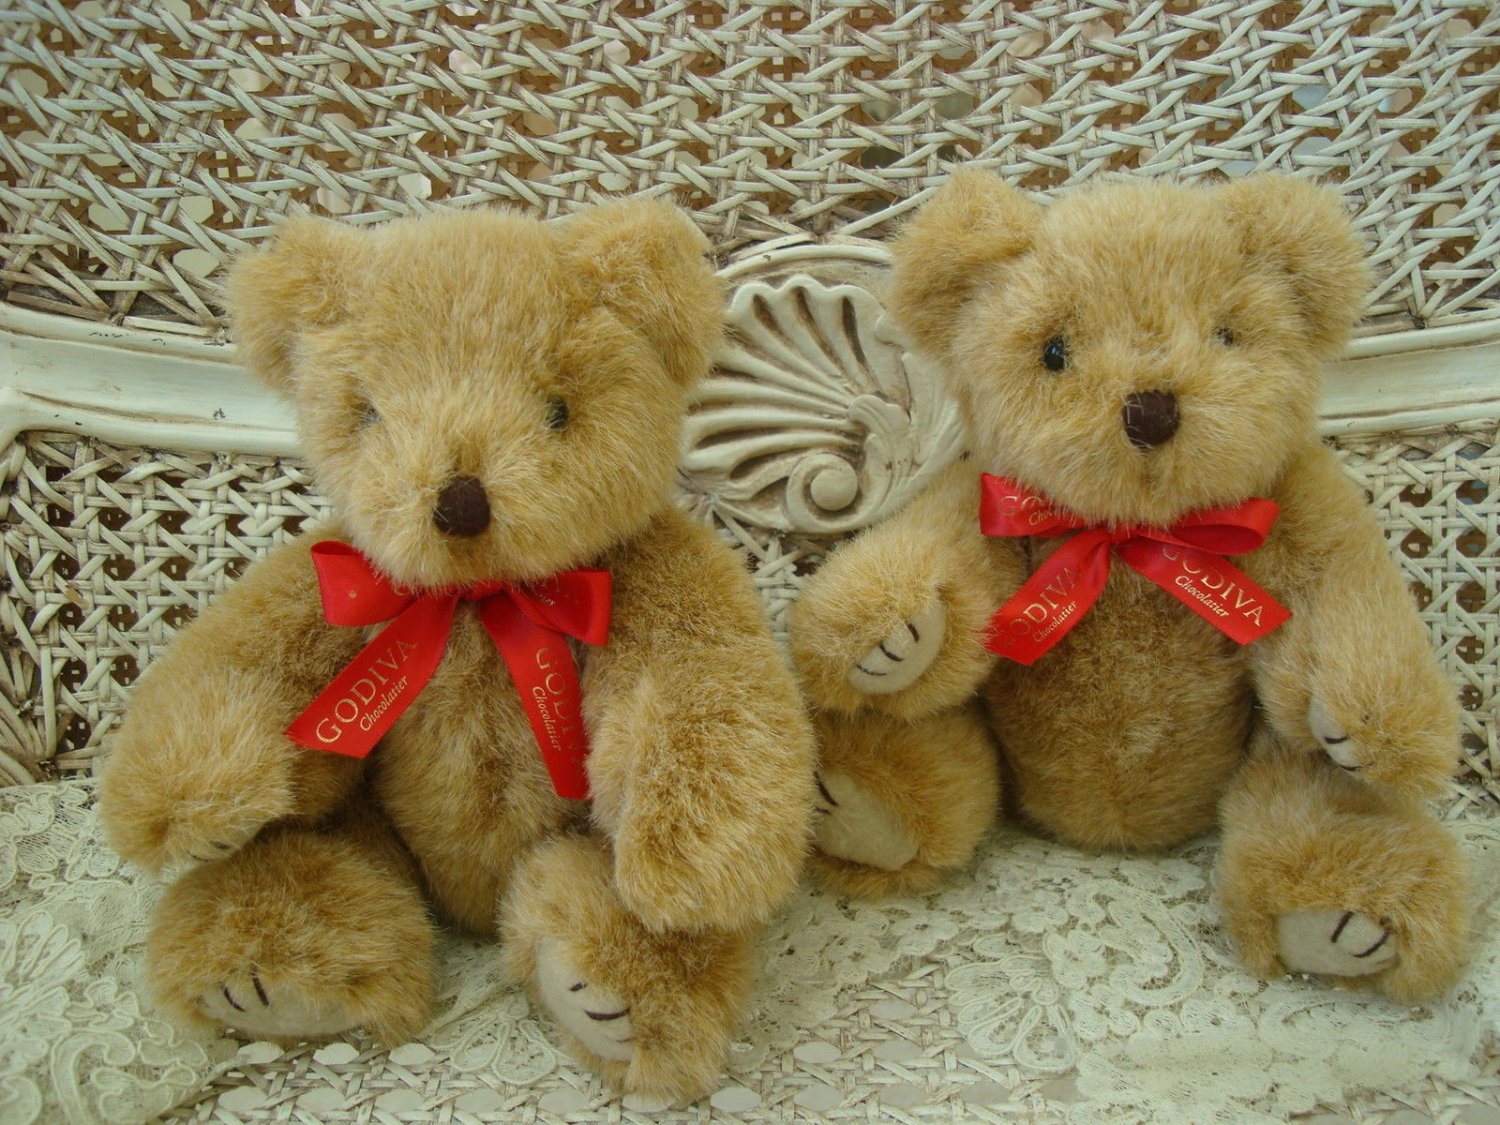 "GODIVA SET OF TWO 9 1/2"" TALL ADORABLE TEDDY BEARS ****SO CUTE****"